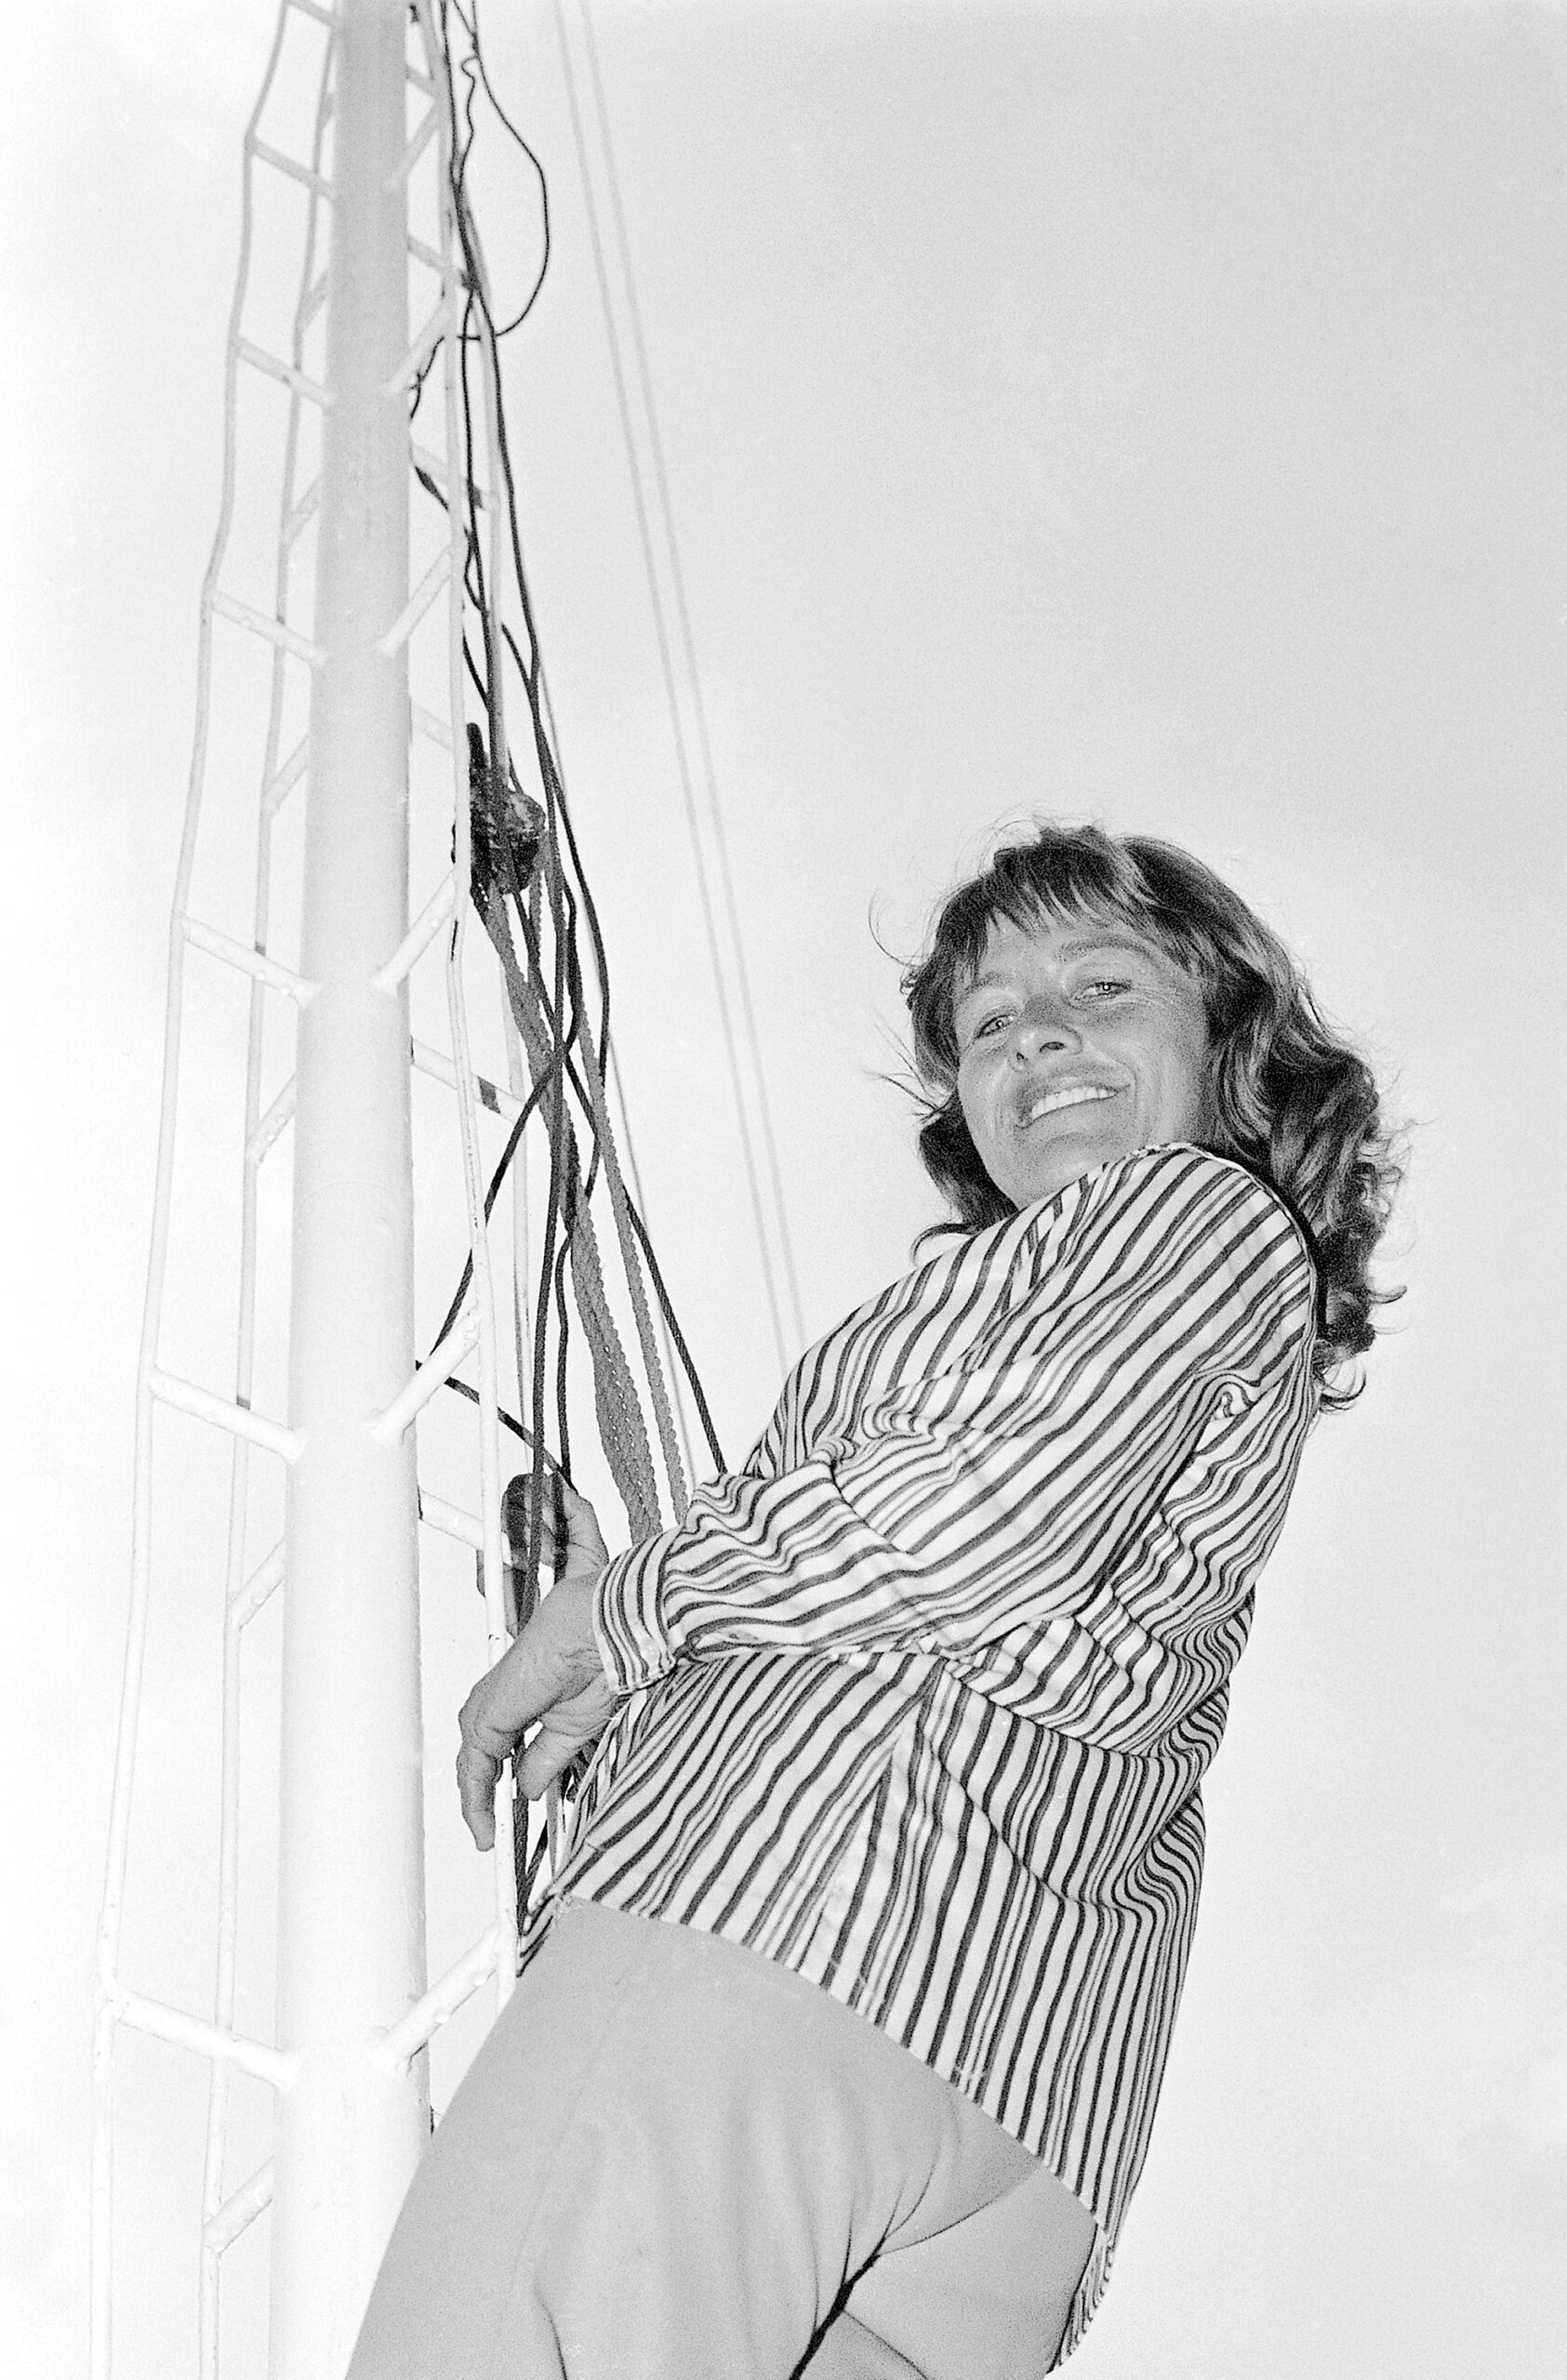 Carla Wallenda, Member of Famed High-Wire Act, Dies at 85 - snopes